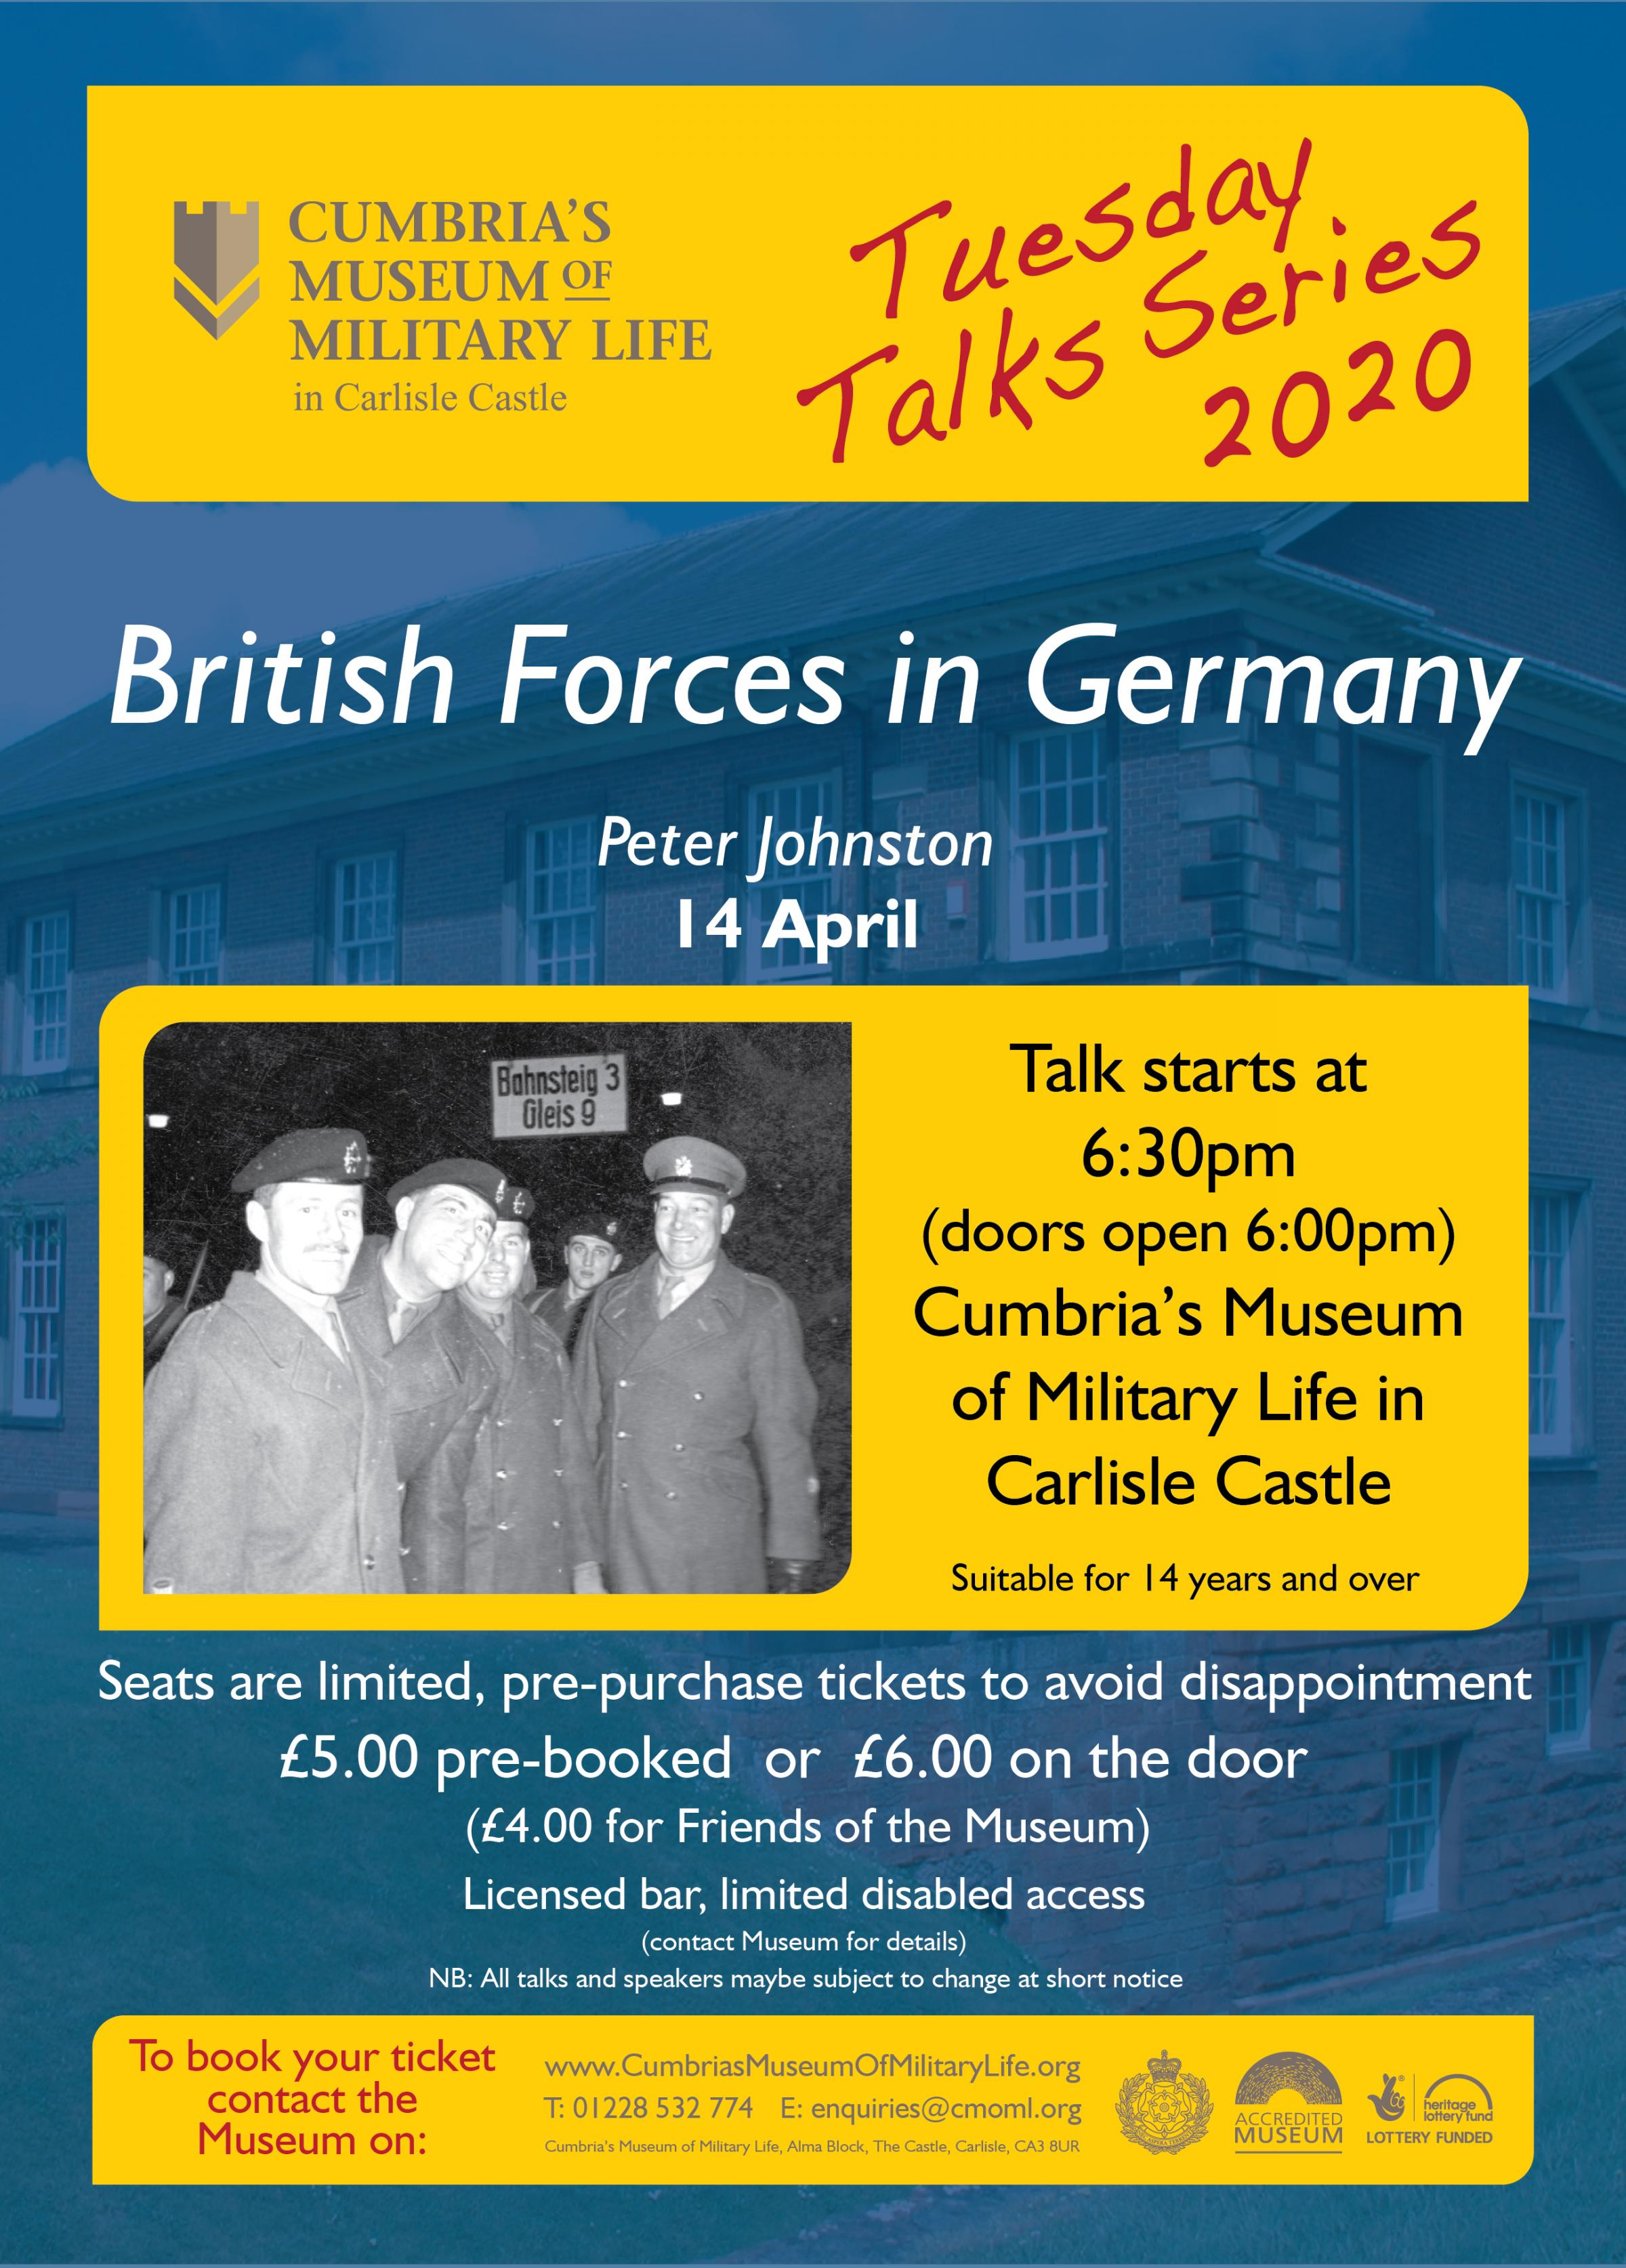 Tuesday Talk - British Forces in Germany